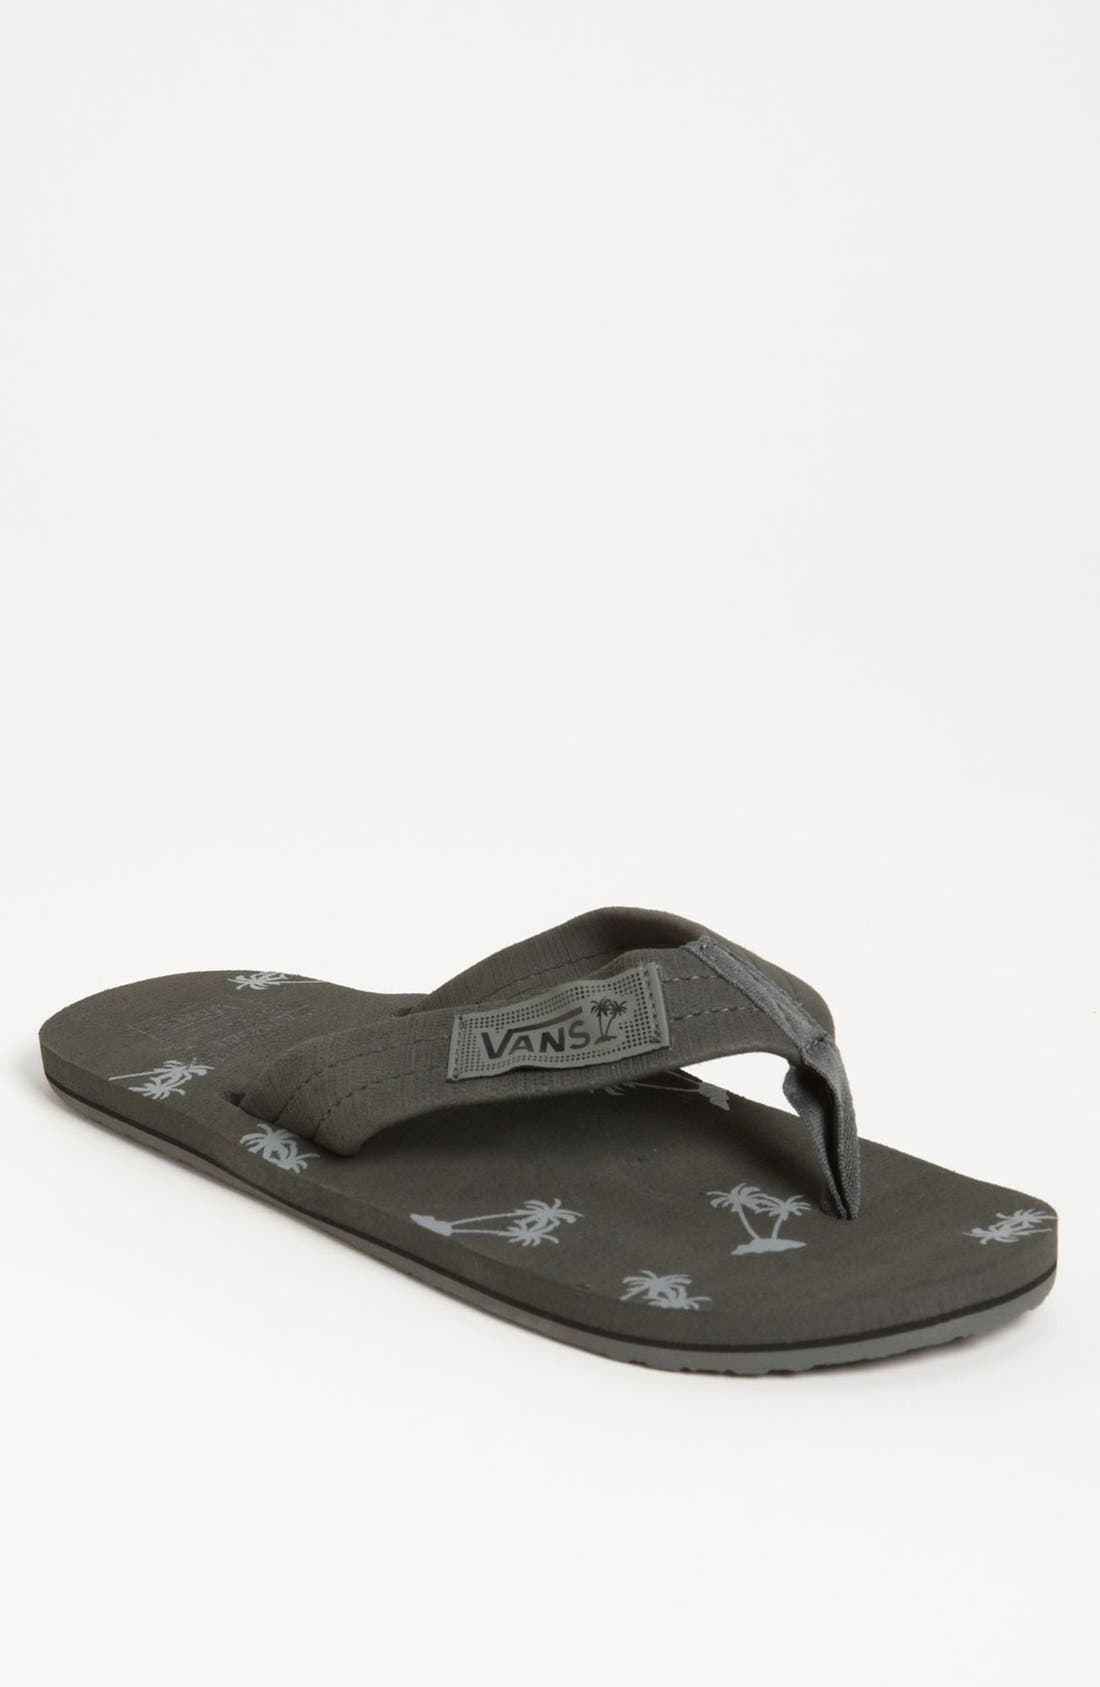 Main Image - Vans 'Thresher' Flip Flop (Men)